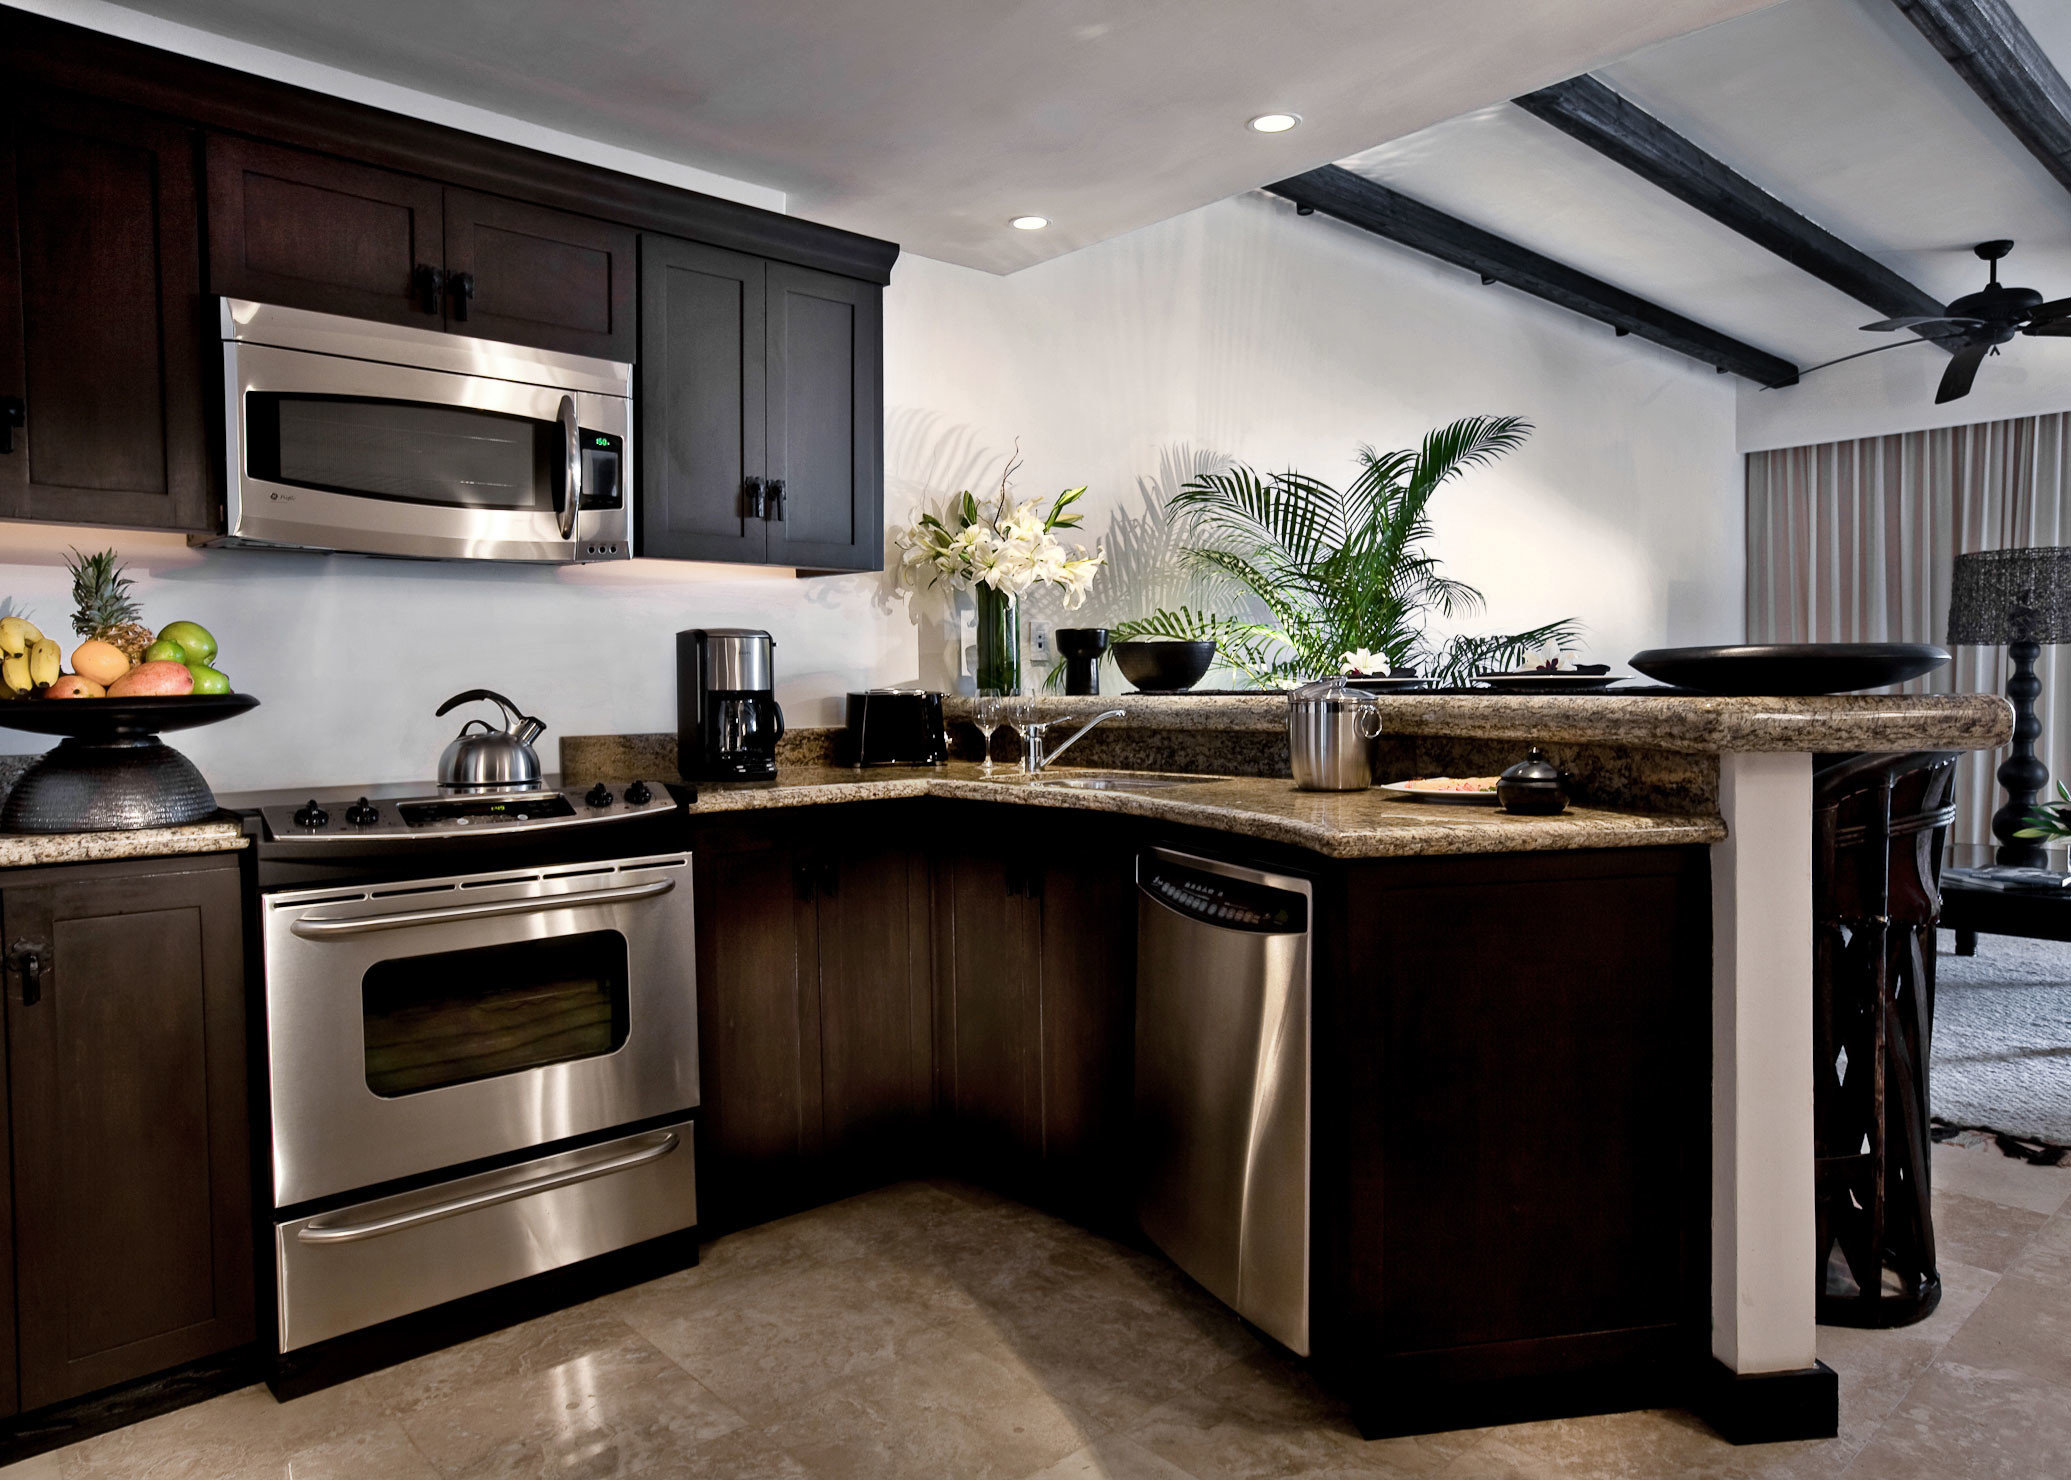 Kitchen Modern cabinet property countertop cabinetry home appliance hardwood cuisine classique living room cuisine stainless kitchen appliance steel